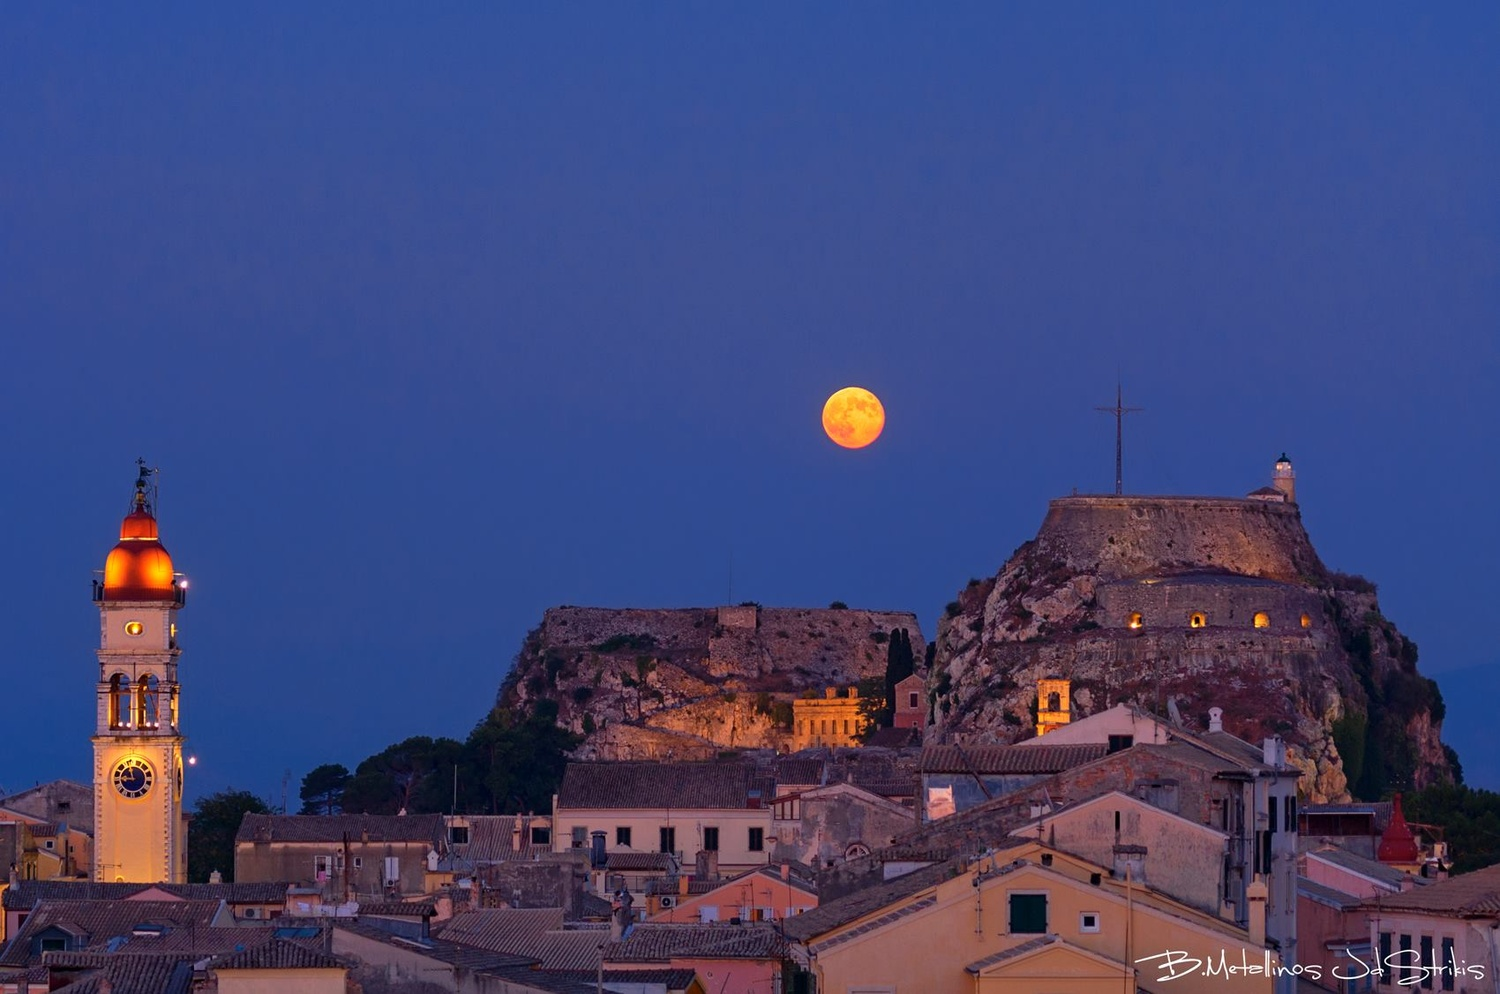 Full Moon above the Old town of Corfu by Bill Metallinos